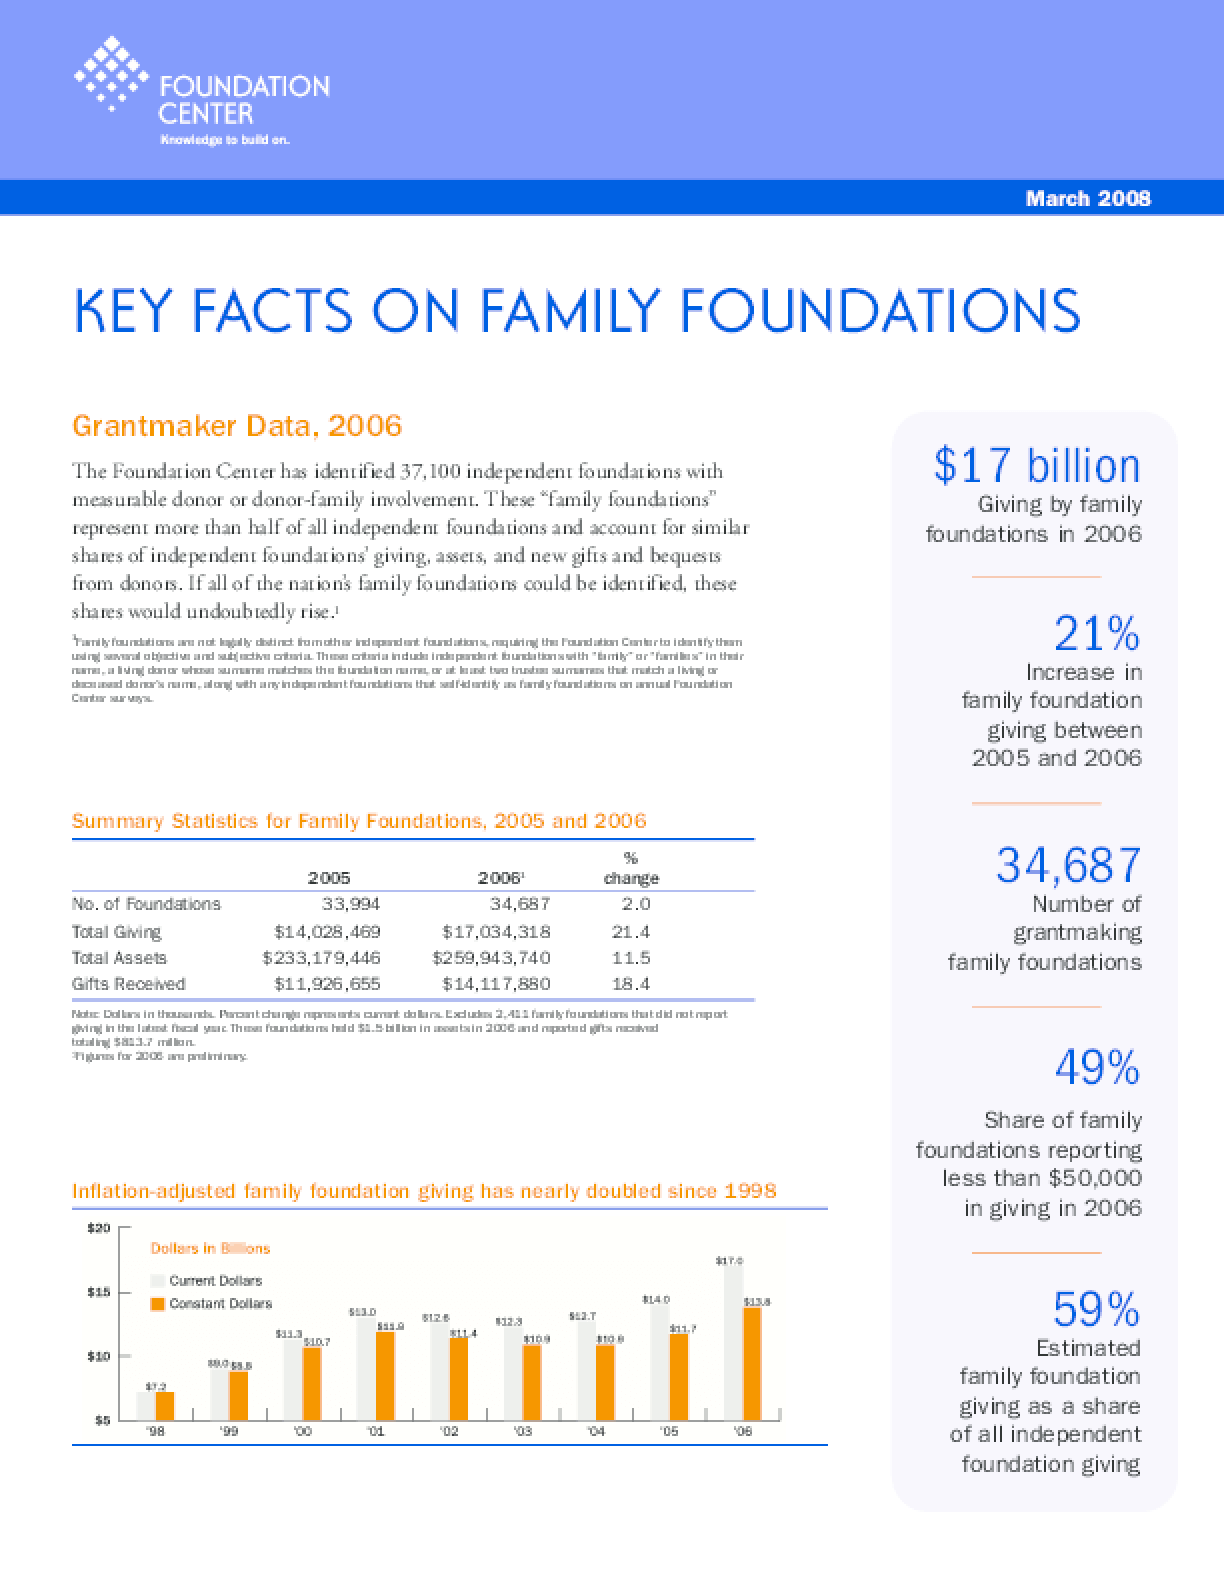 Key Facts on Family Foundations 2008